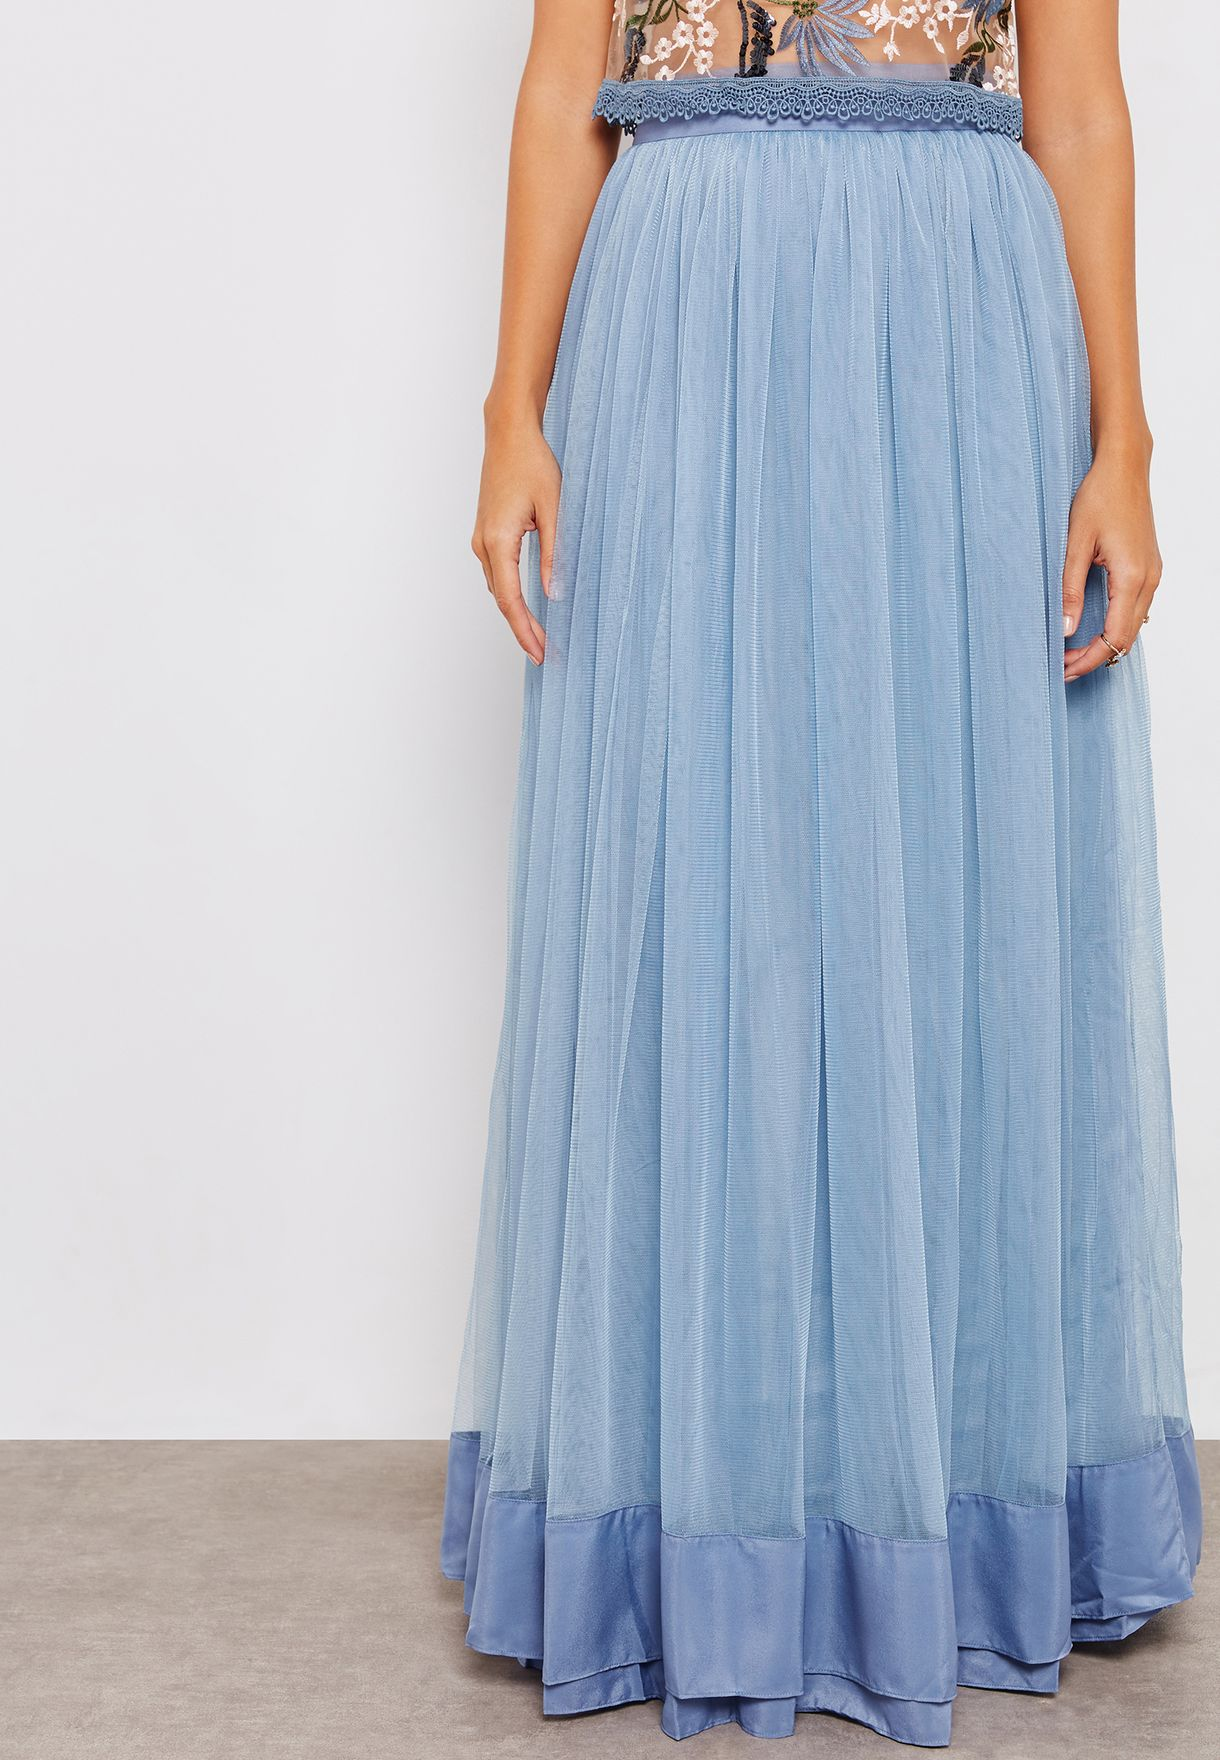 Sheer Hem Detail Skirt